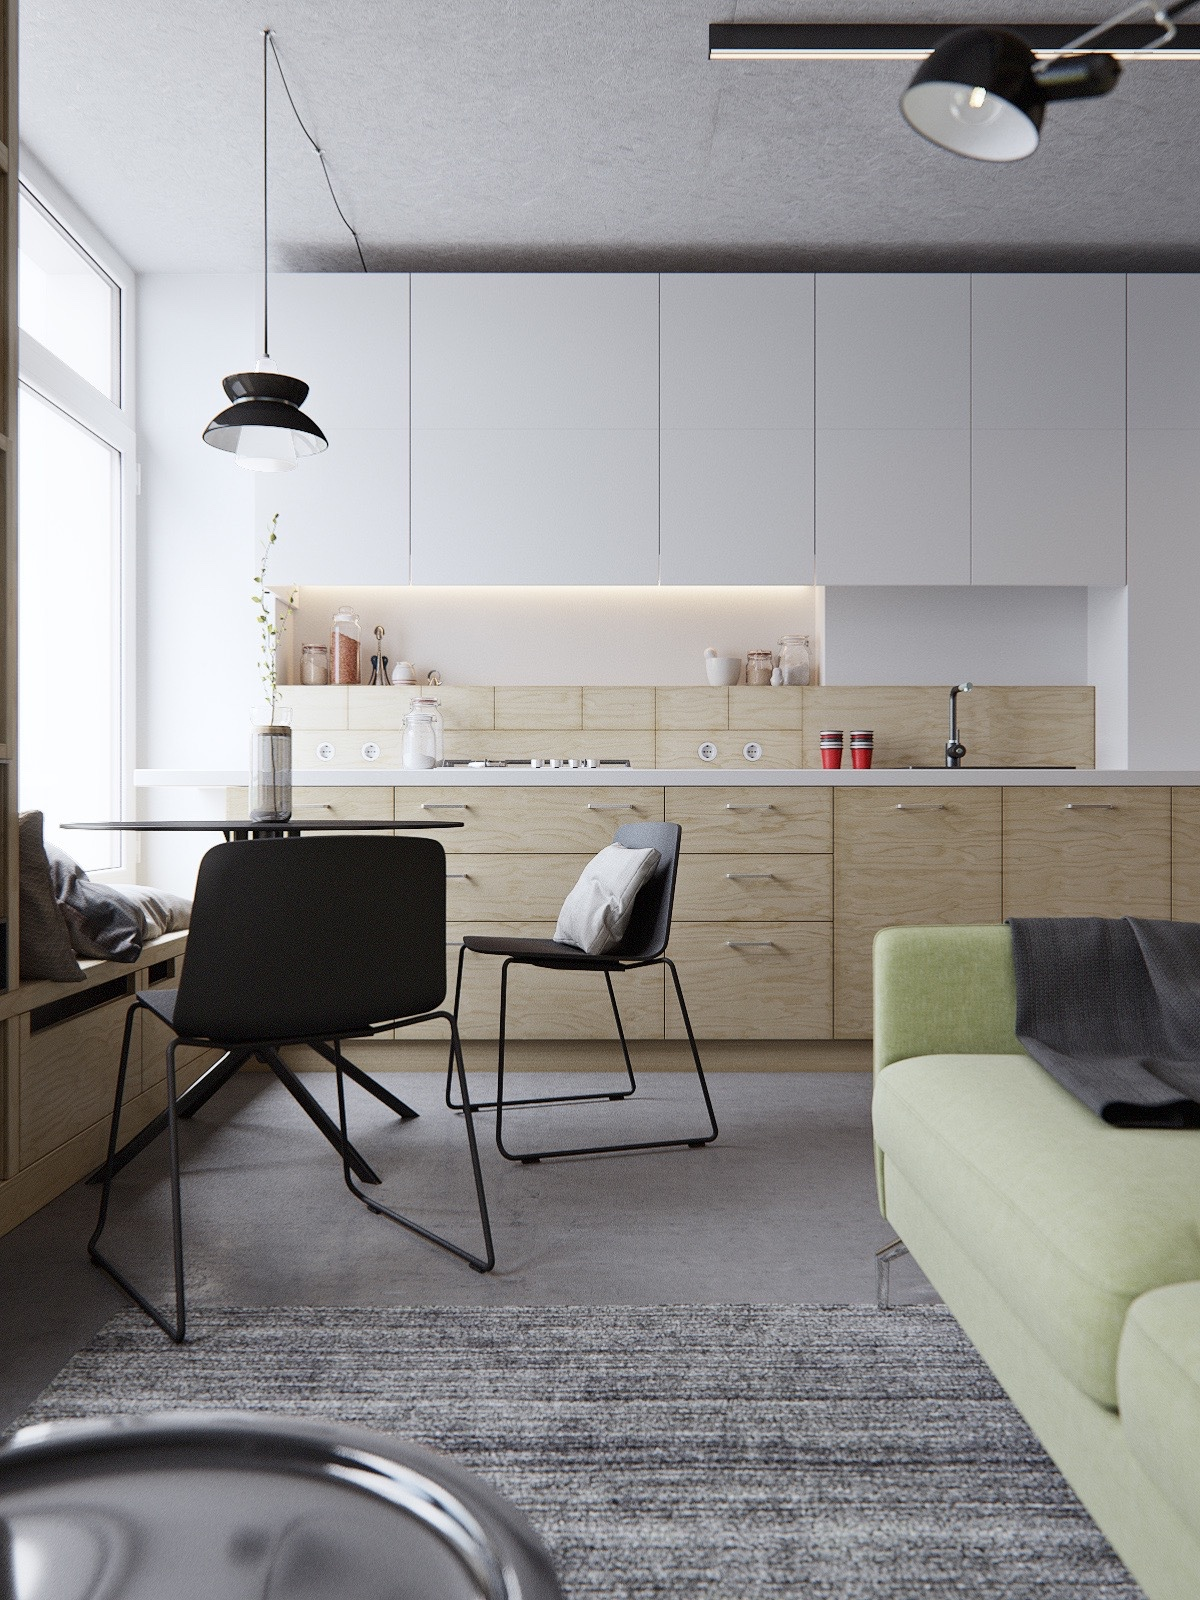 40 Minimalist Kitchens to Get Super Sleek Inspiration images 30